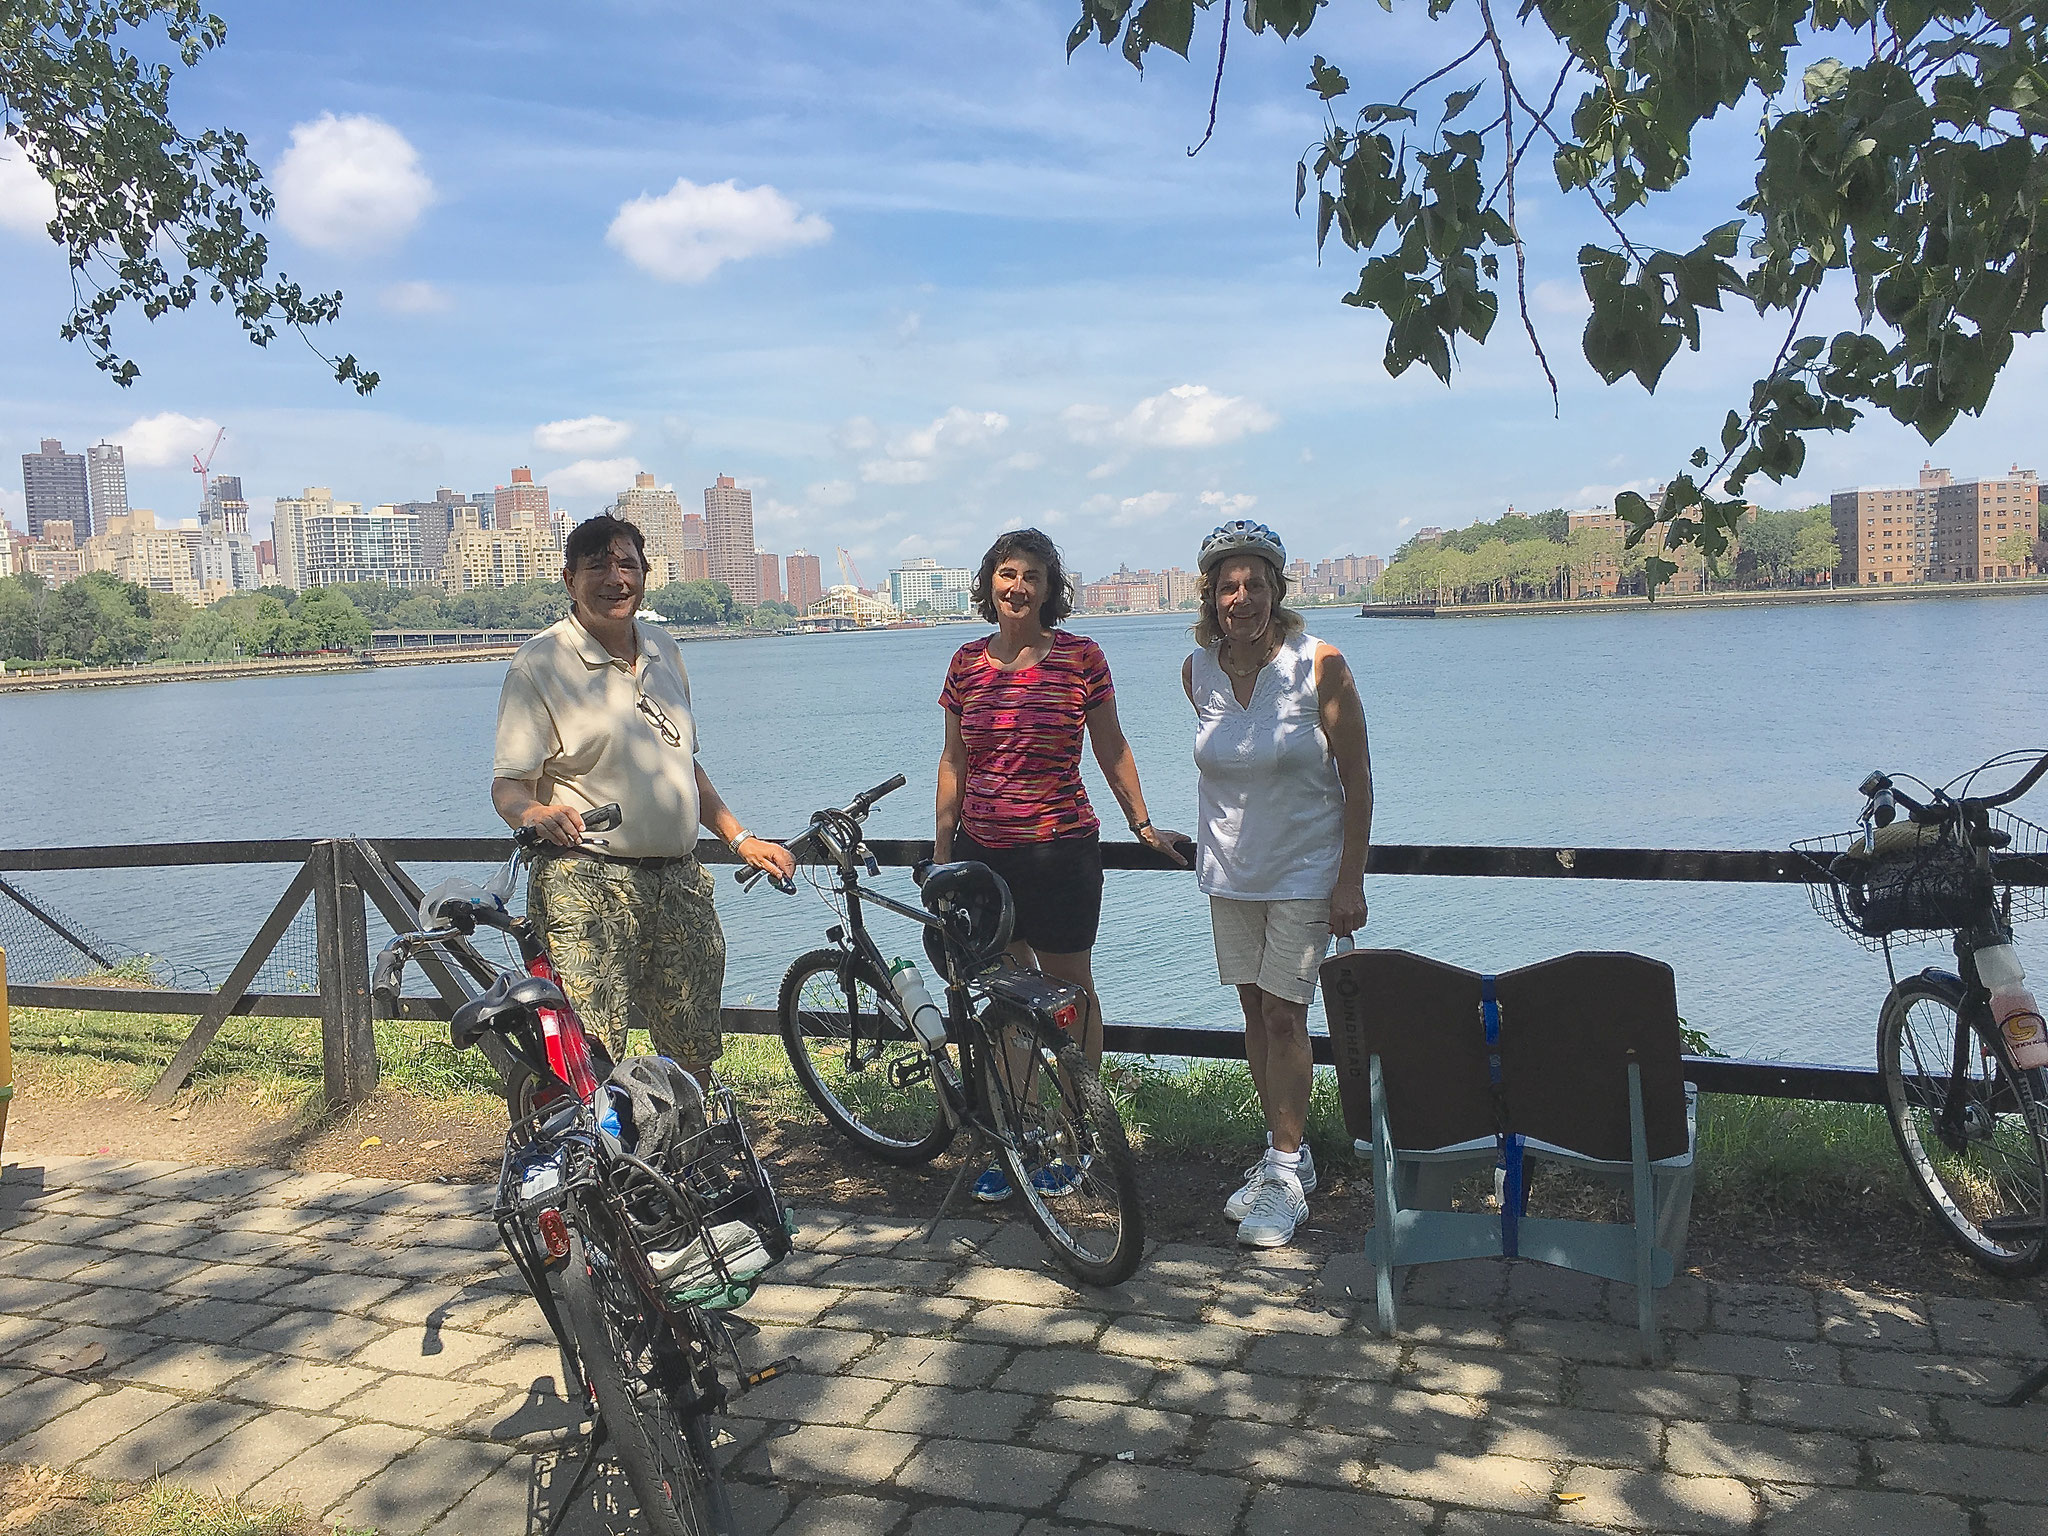 Aug. 12, 2016: John, Ann Ackerman, & Lorraine on a bike ride at Socrates Sculpture Park